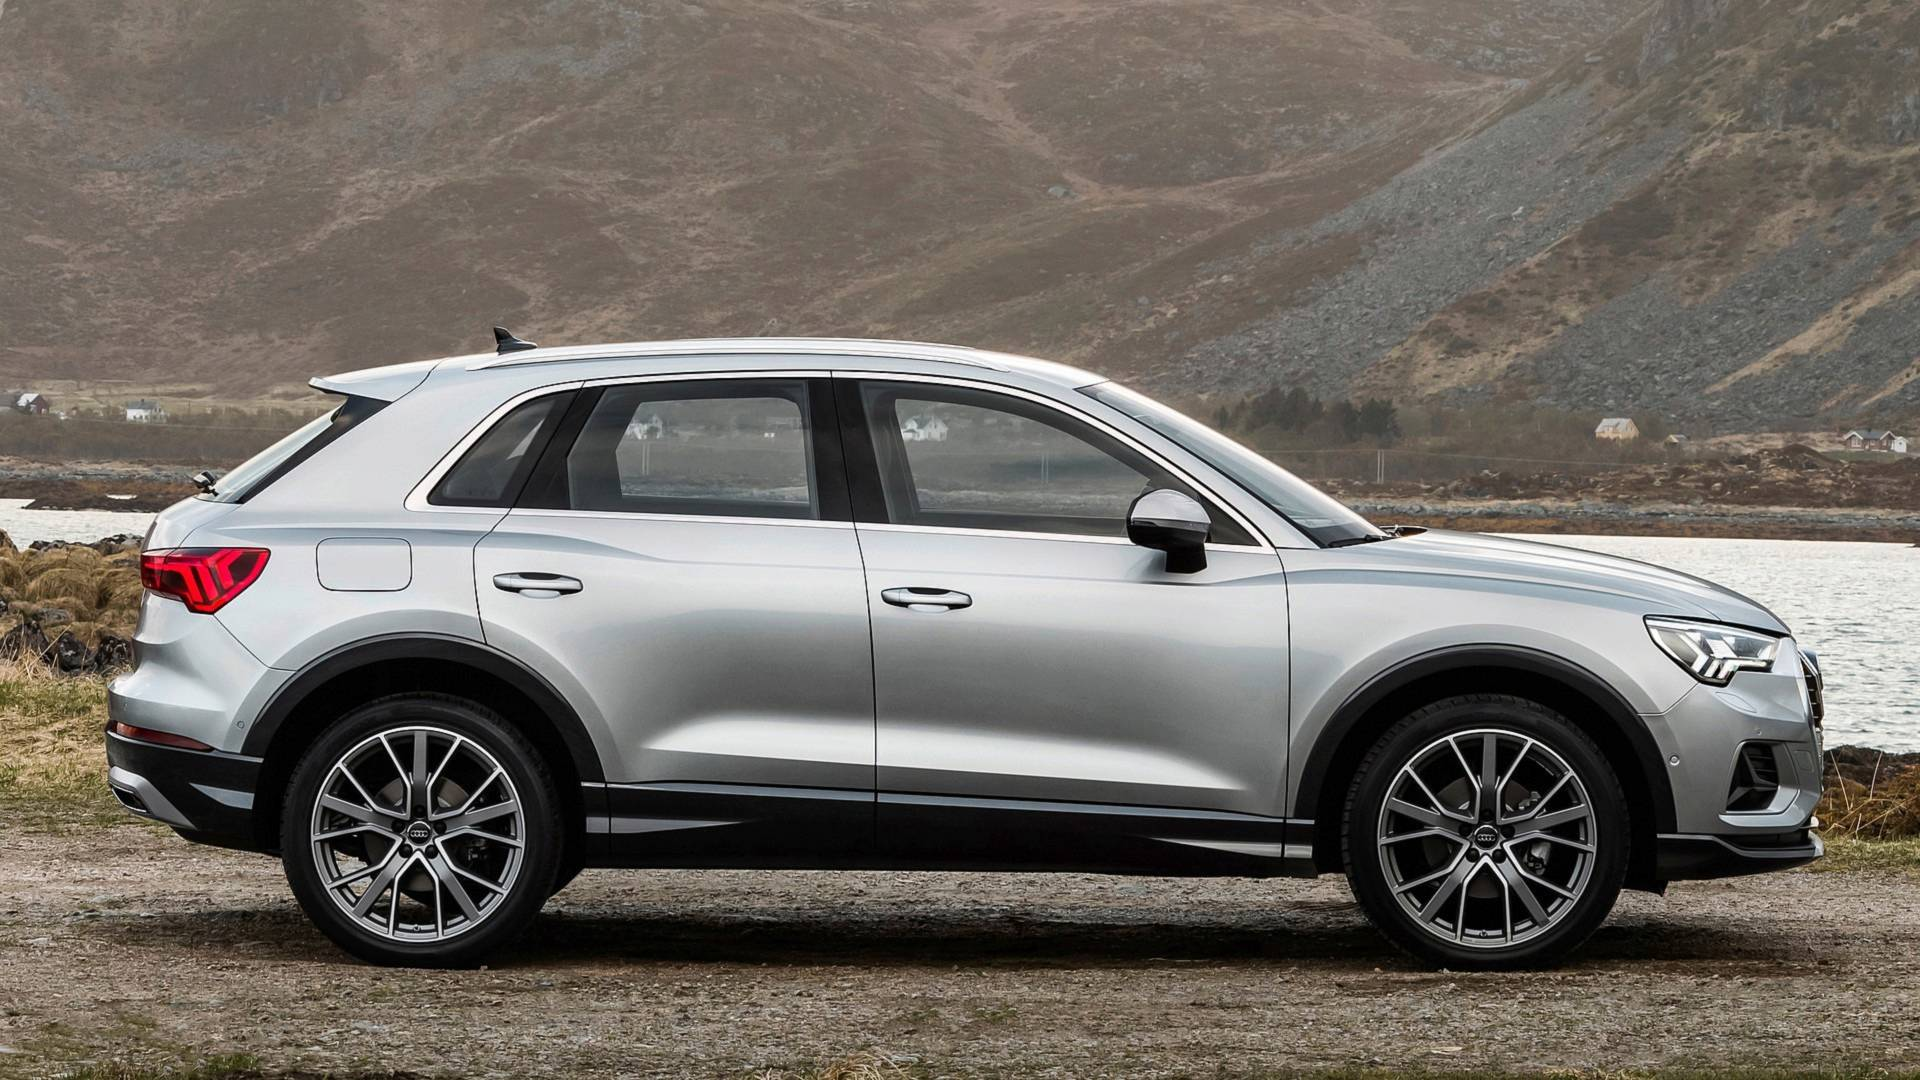 2018 Audi Q3: New Generation, Redesign, Changes >> 2019 Audi Q3 Gets Athletic New Look And Even More Tech